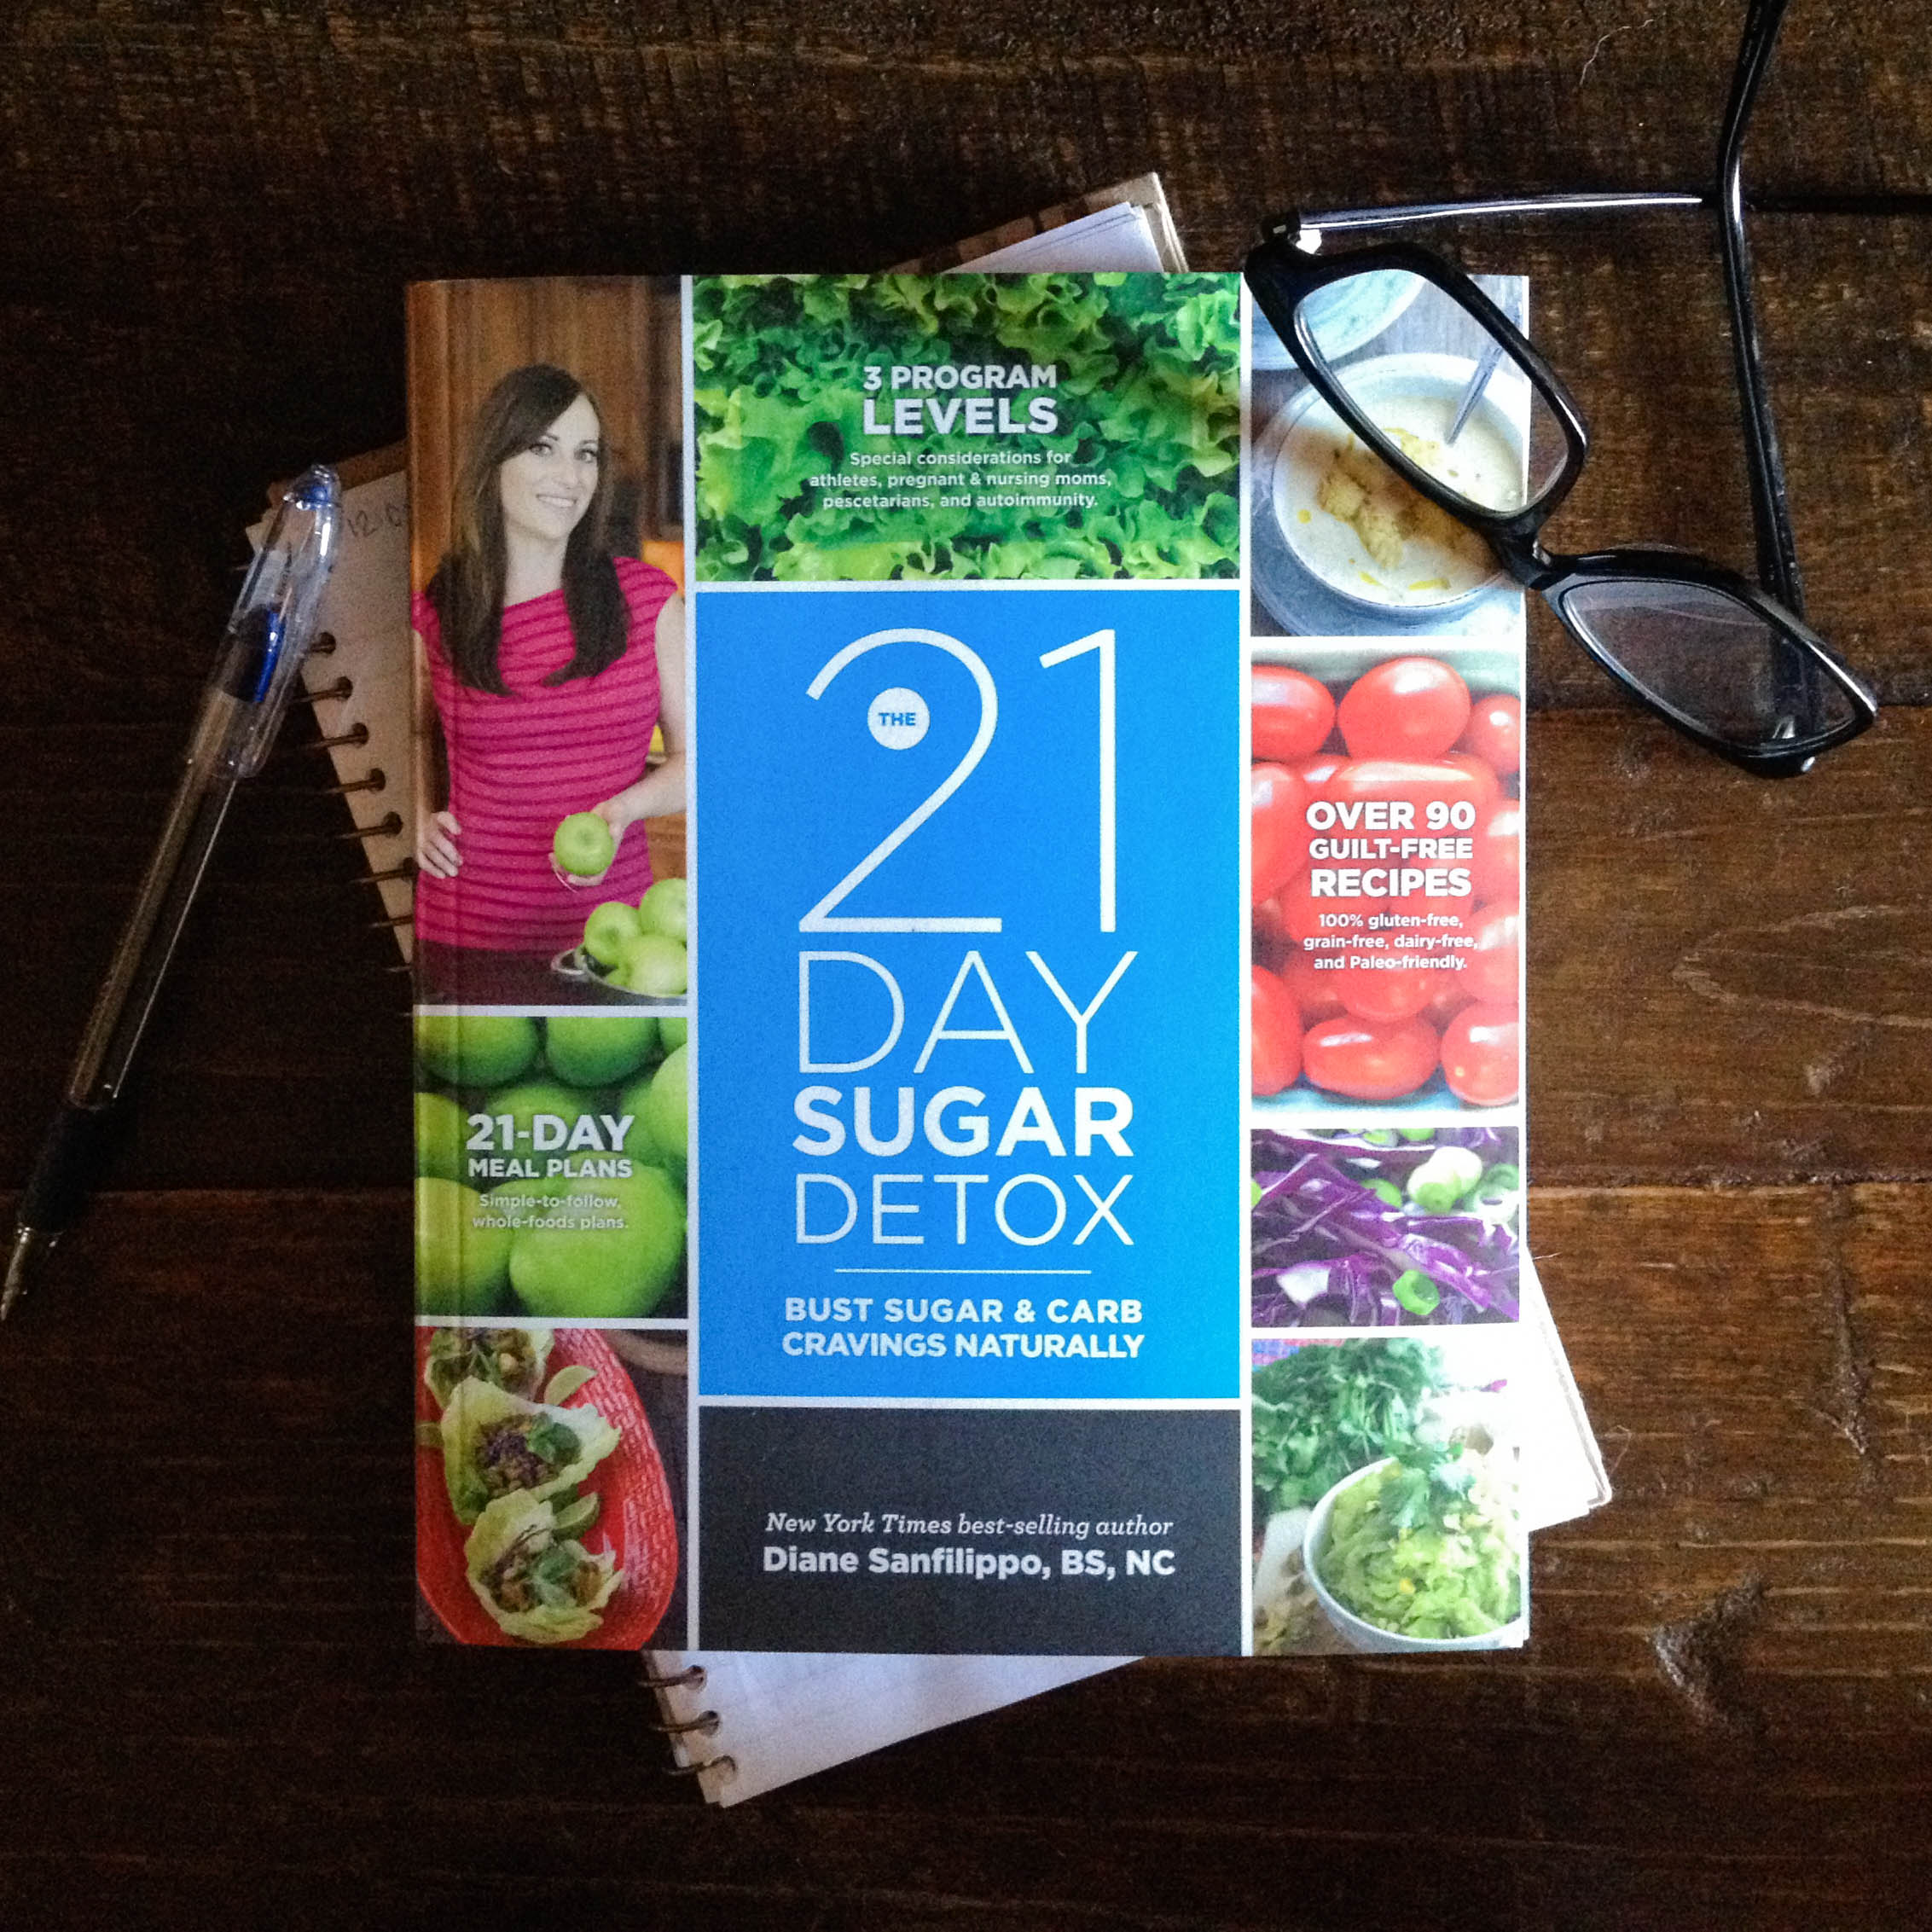 Fed amp fitreview amp giveaway the 21 day sugar detox fed amp fit